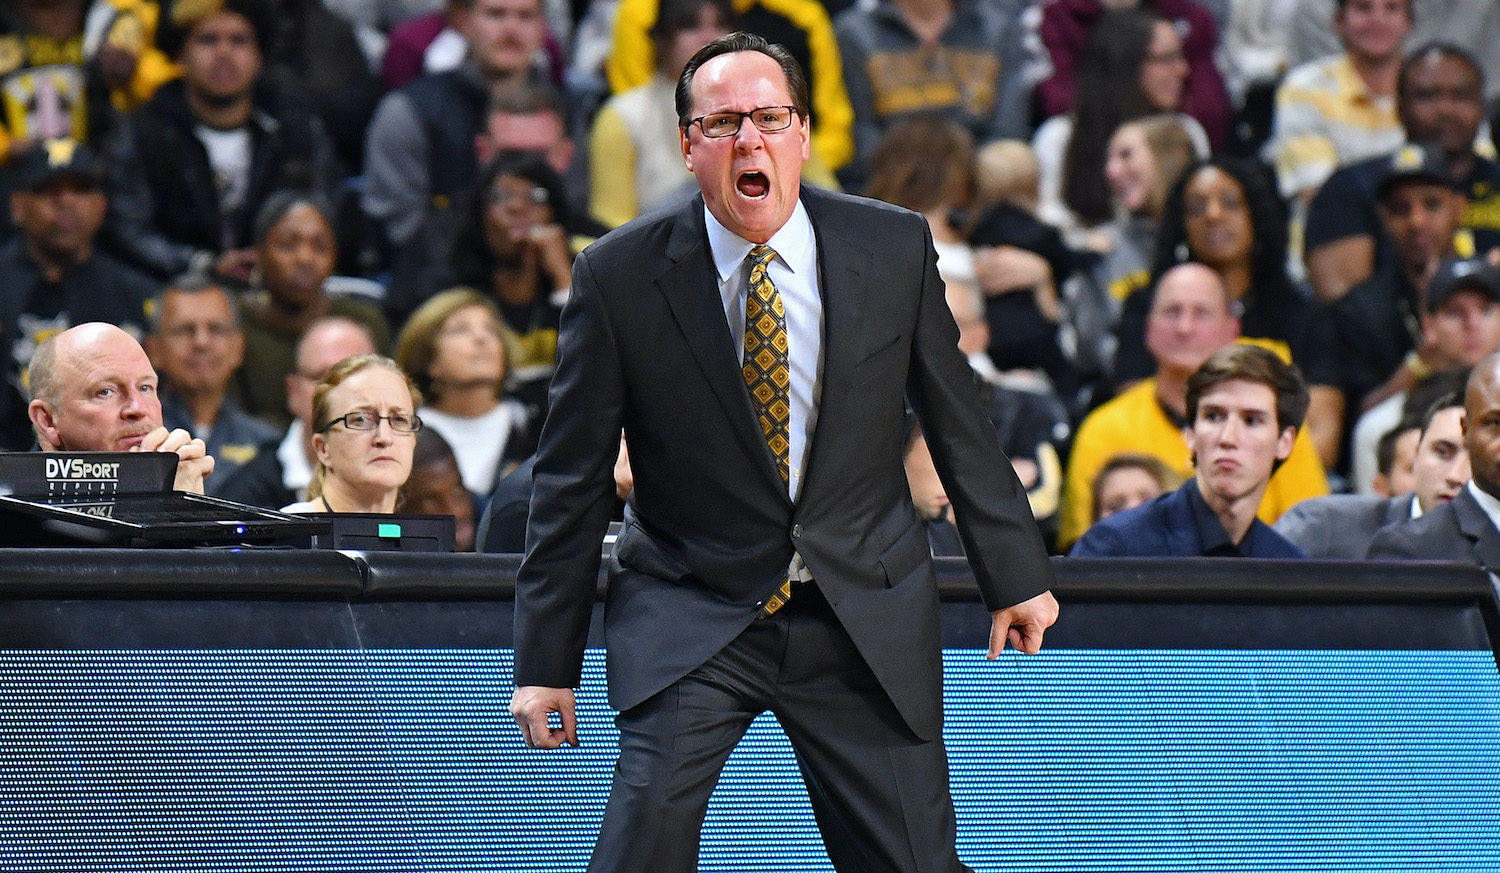 WICHITA, KS - NOVEMBER 13: of the Wichita State Shockers of the College of Charleston Cougars during the first half on November 13, 2017 at Charles Koch Arena in Wichita, Kansas. (Photo by Peter Aiken/Getty Images) *** Local Caption ***